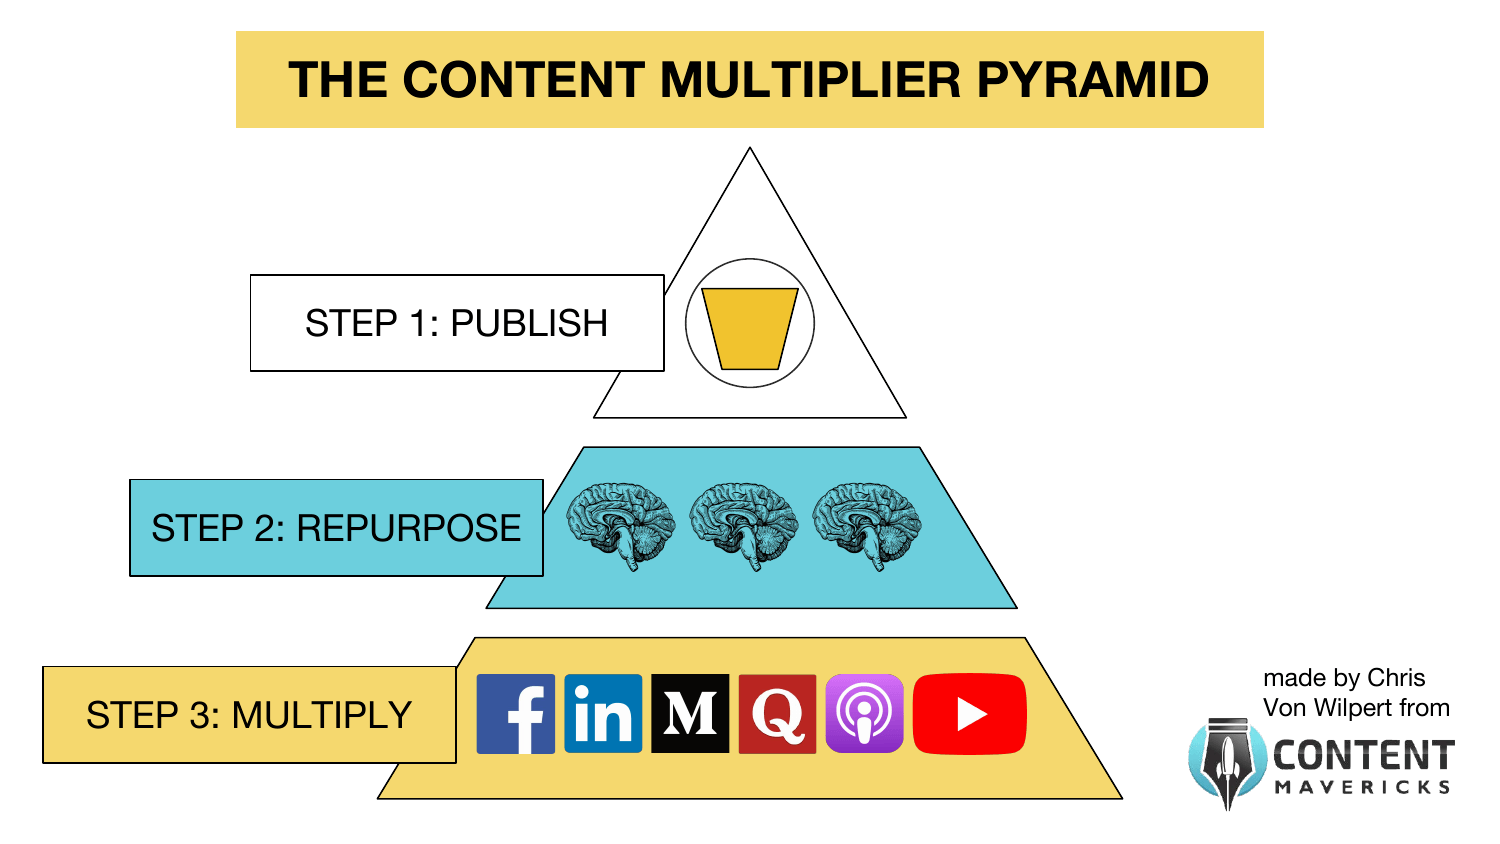 content multiplier pyramid image